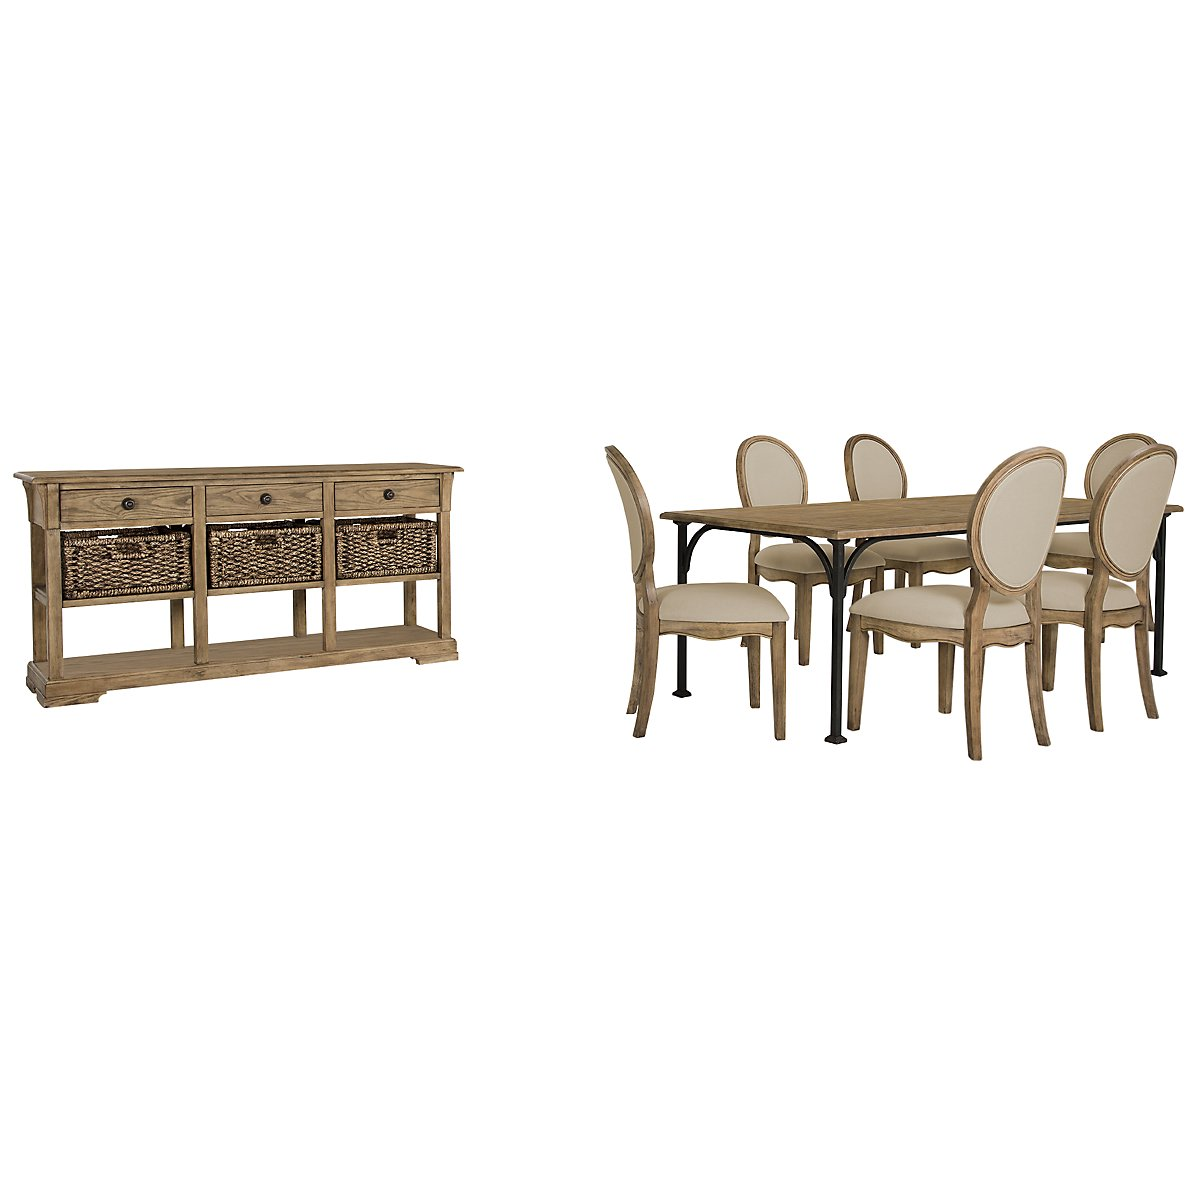 Shelbourne2 Mid Tone Rectangular Dining Room